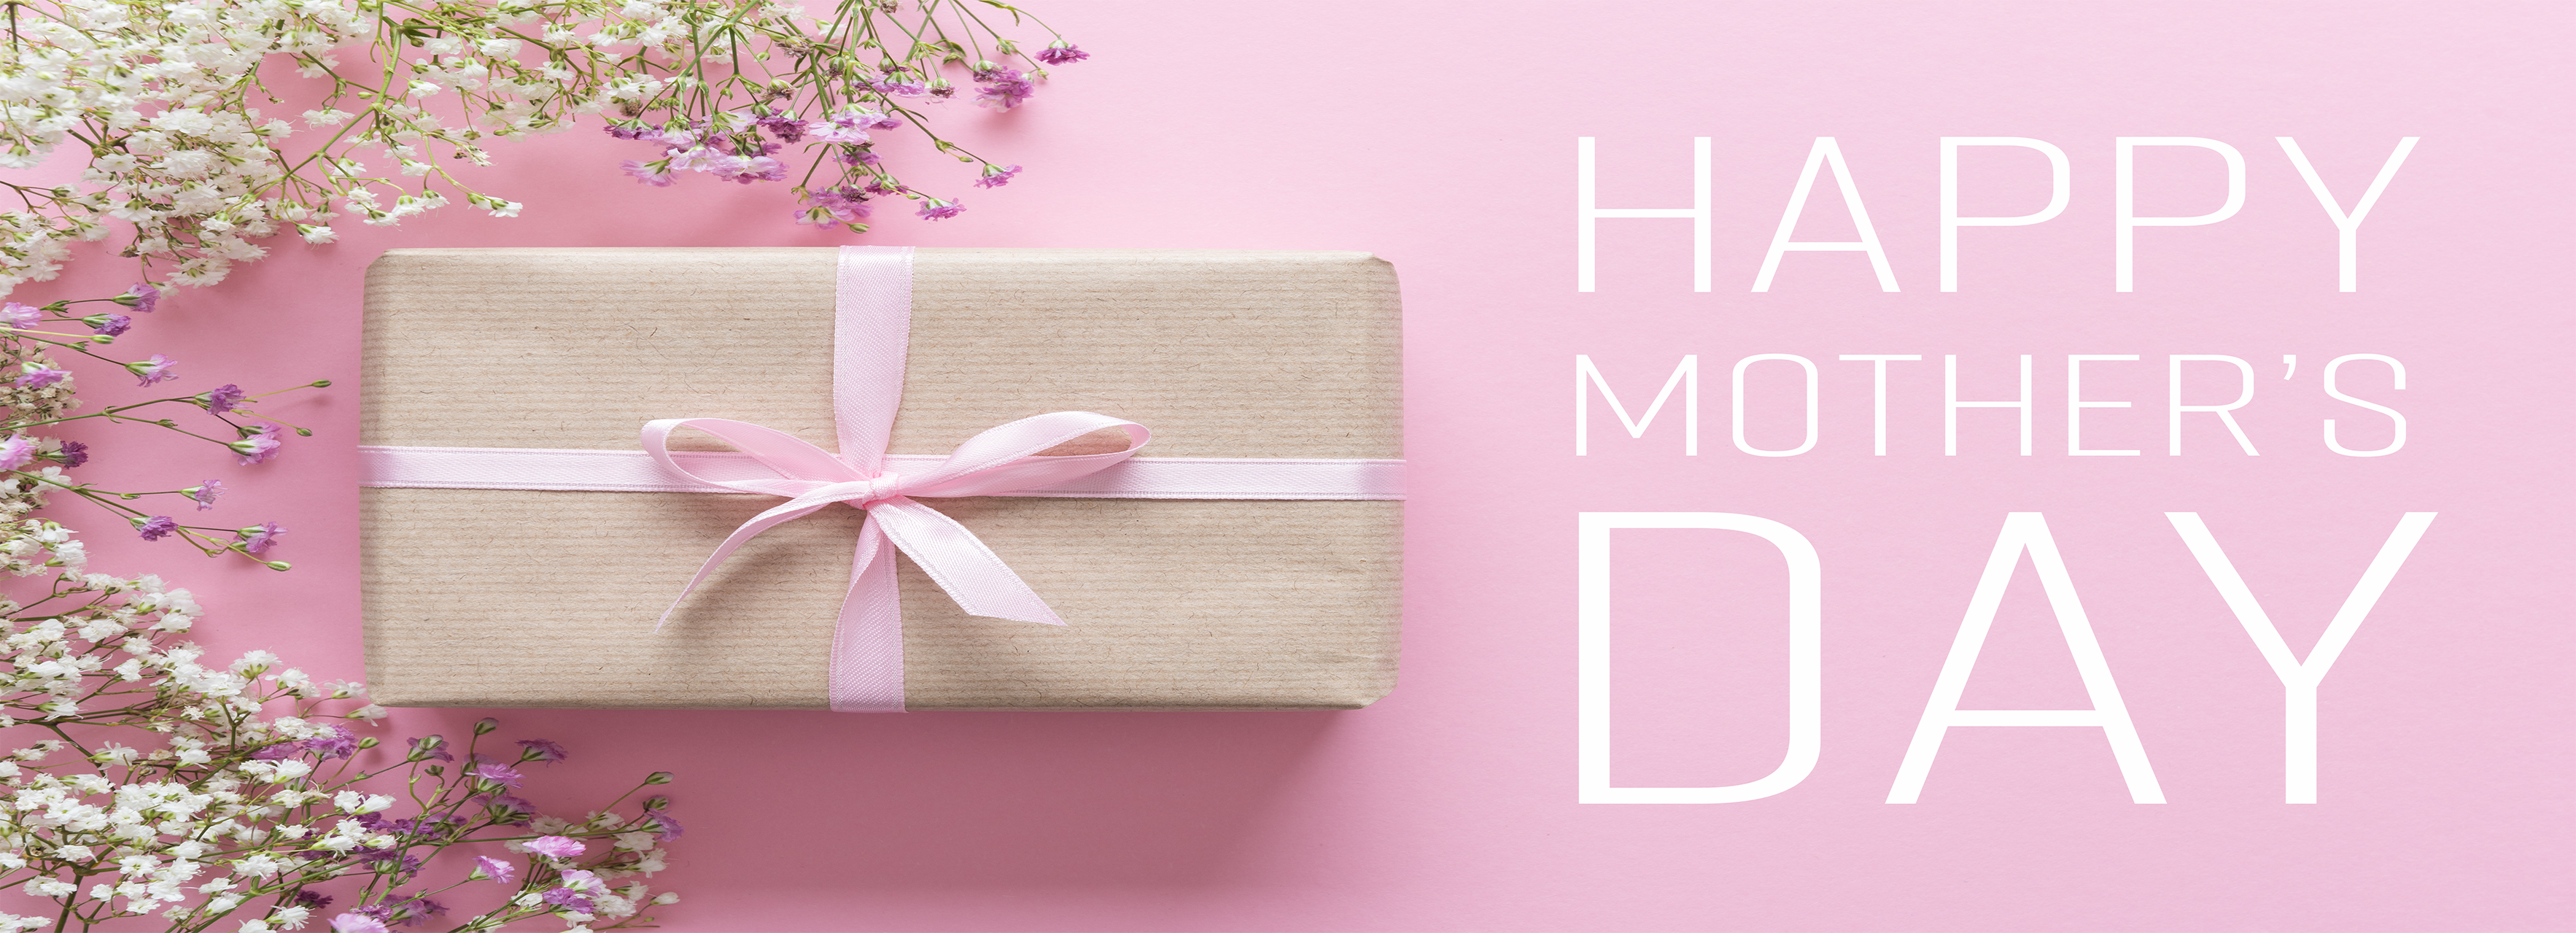 https://heavensentgreetingcards.com/wp-content/uploads/2019/05/Mothers-day-HOME-PAGE-BANNER.png